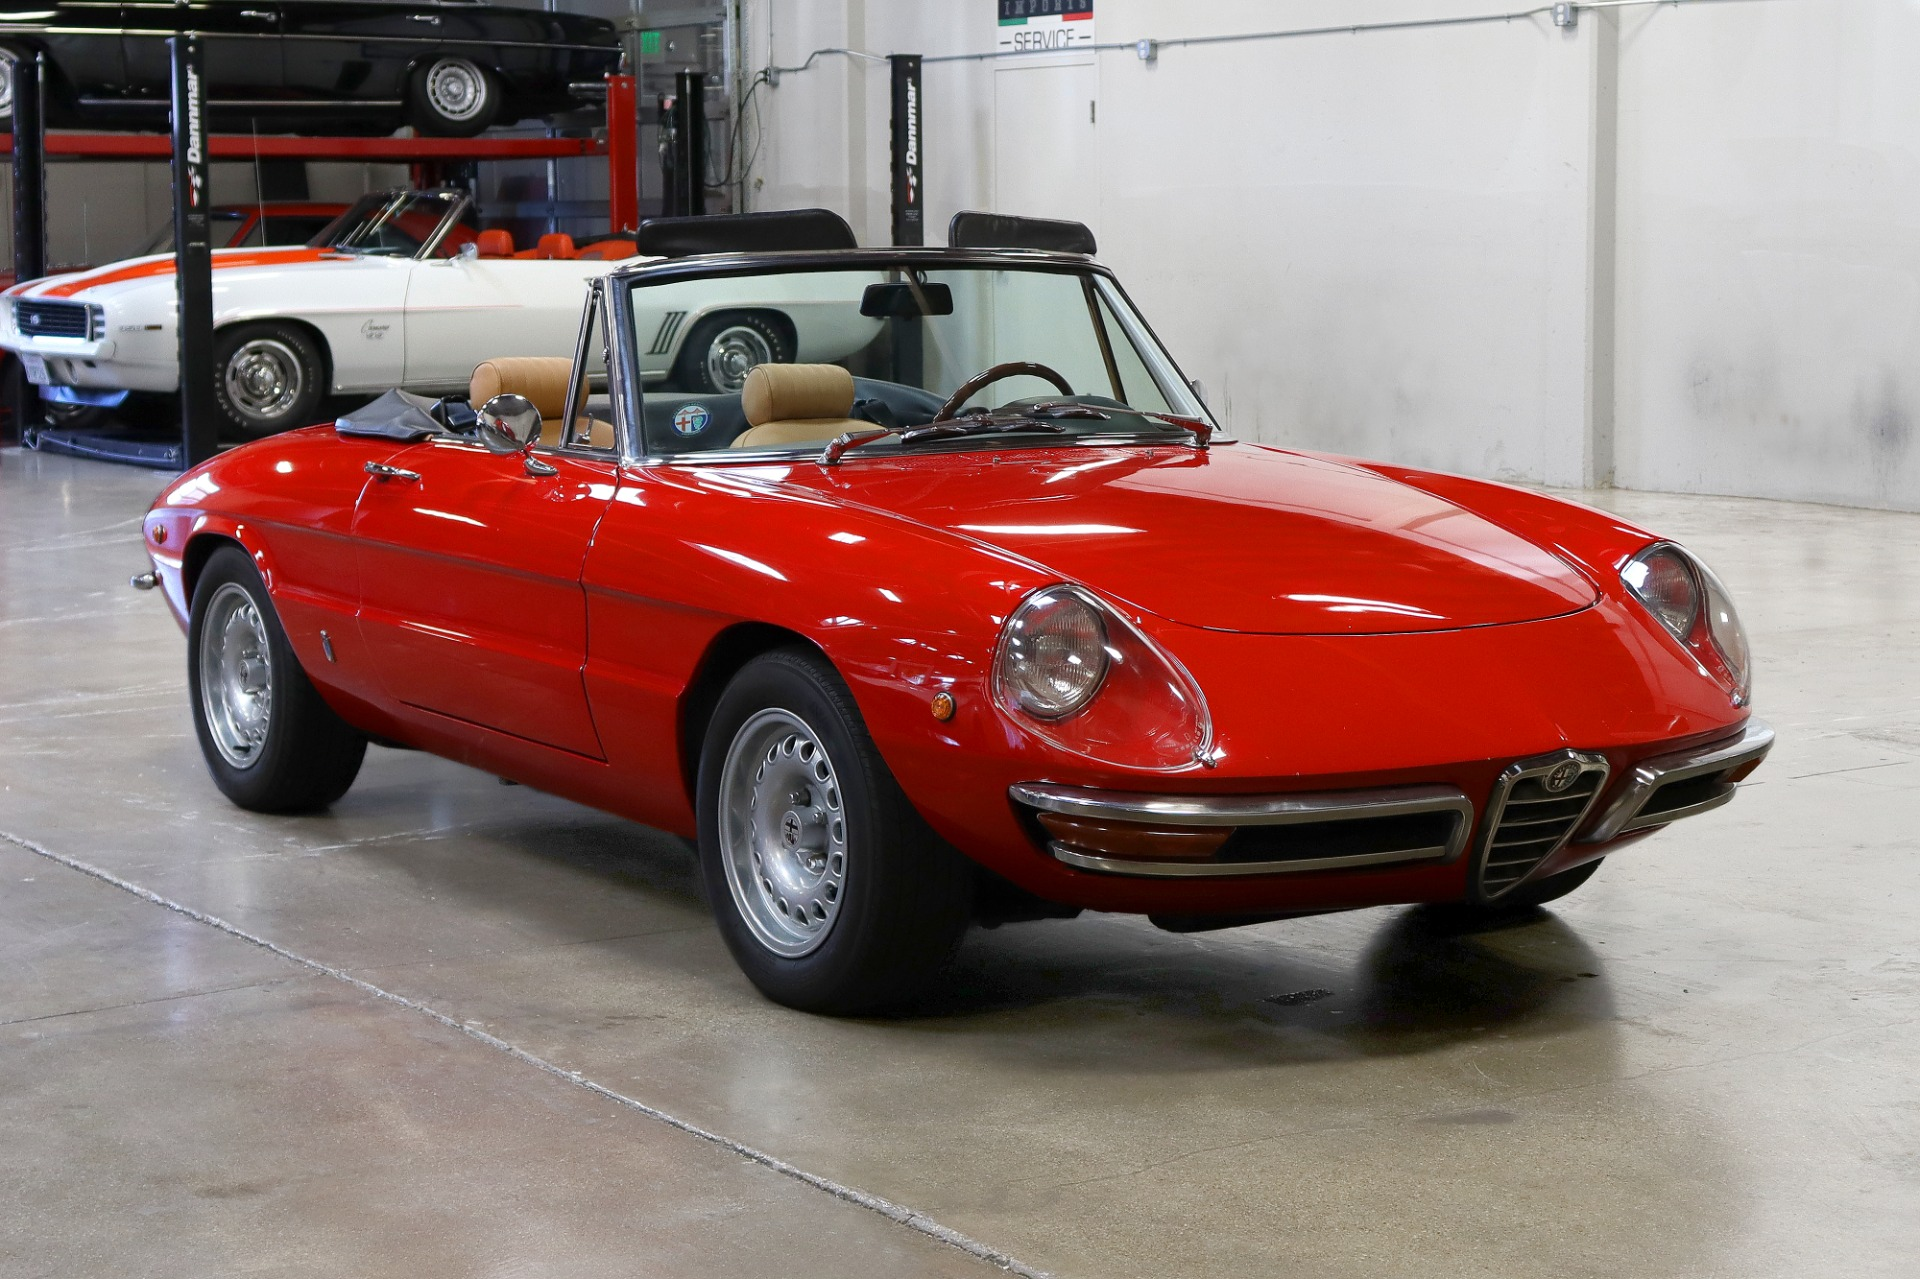 Used 1969 Alfa Romeo 1750 Duetto Spider for sale $51,995 at San Francisco Sports Cars in San Carlos CA 94070 1